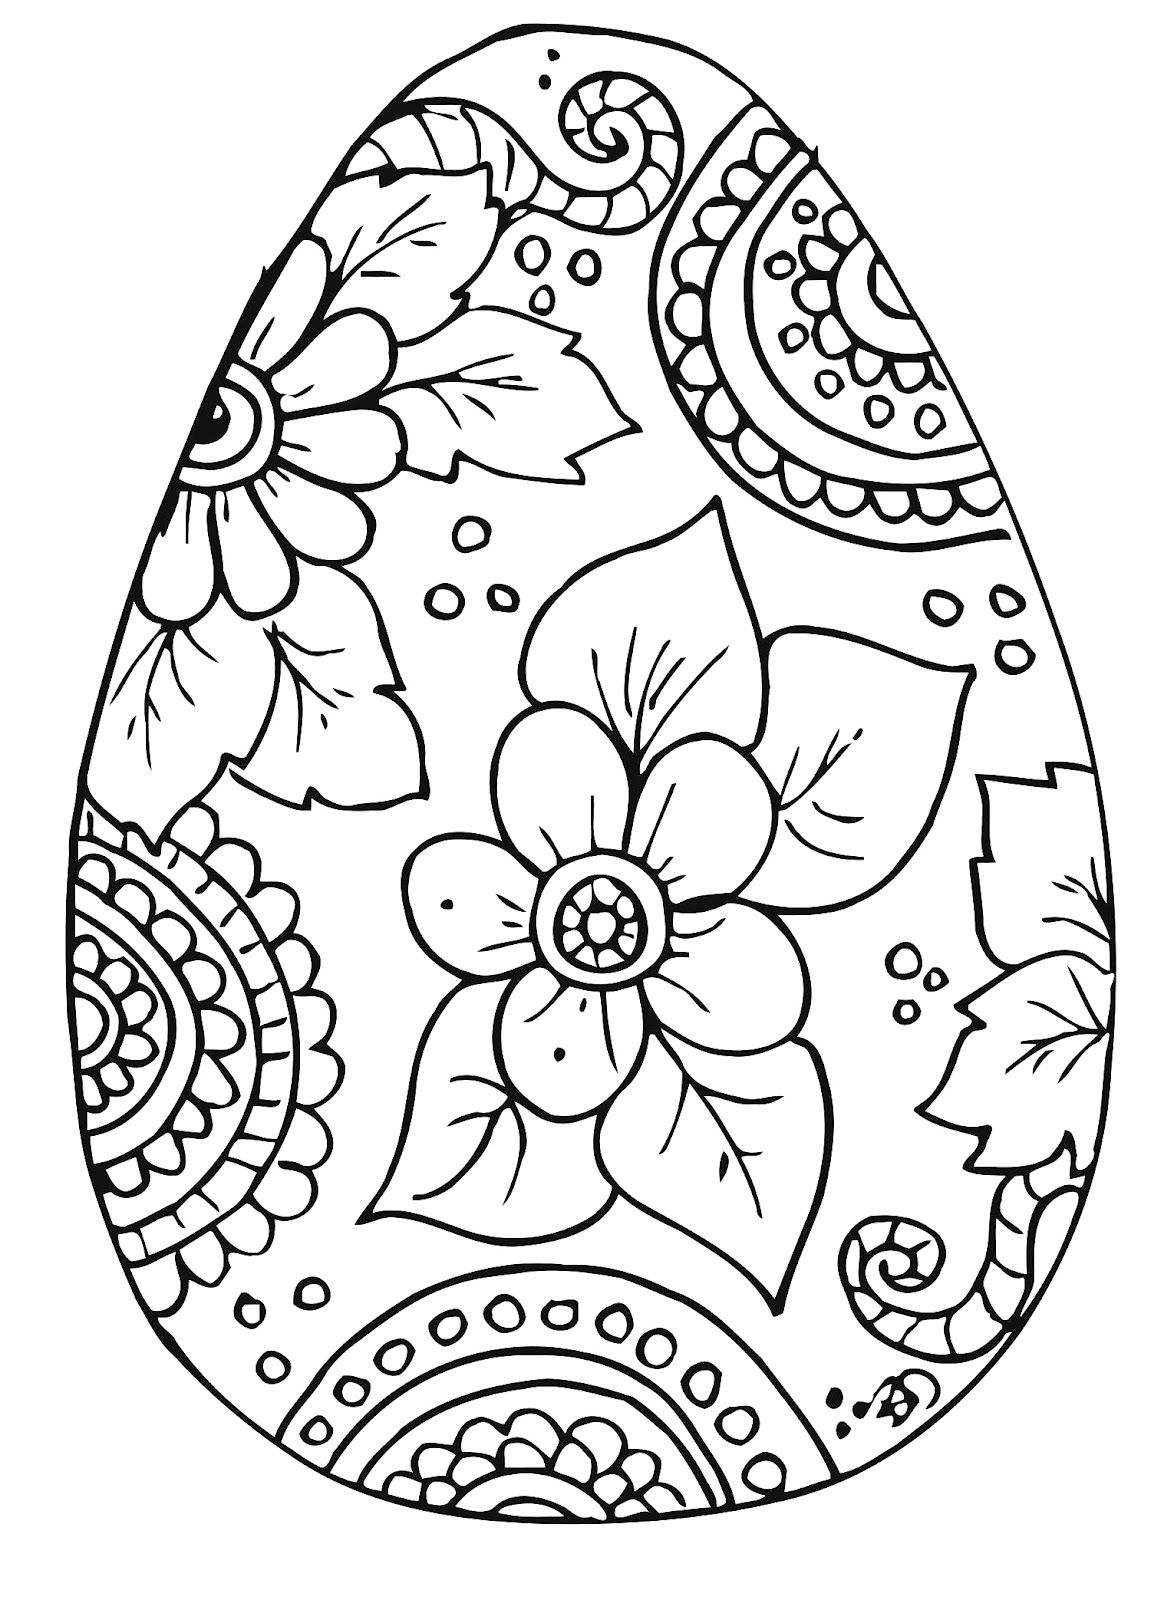 printable easter egg coloring pages B.D.Designs: 3 Free Coloring pages for Easter / Kleurplaat Pasen  printable easter egg coloring pages